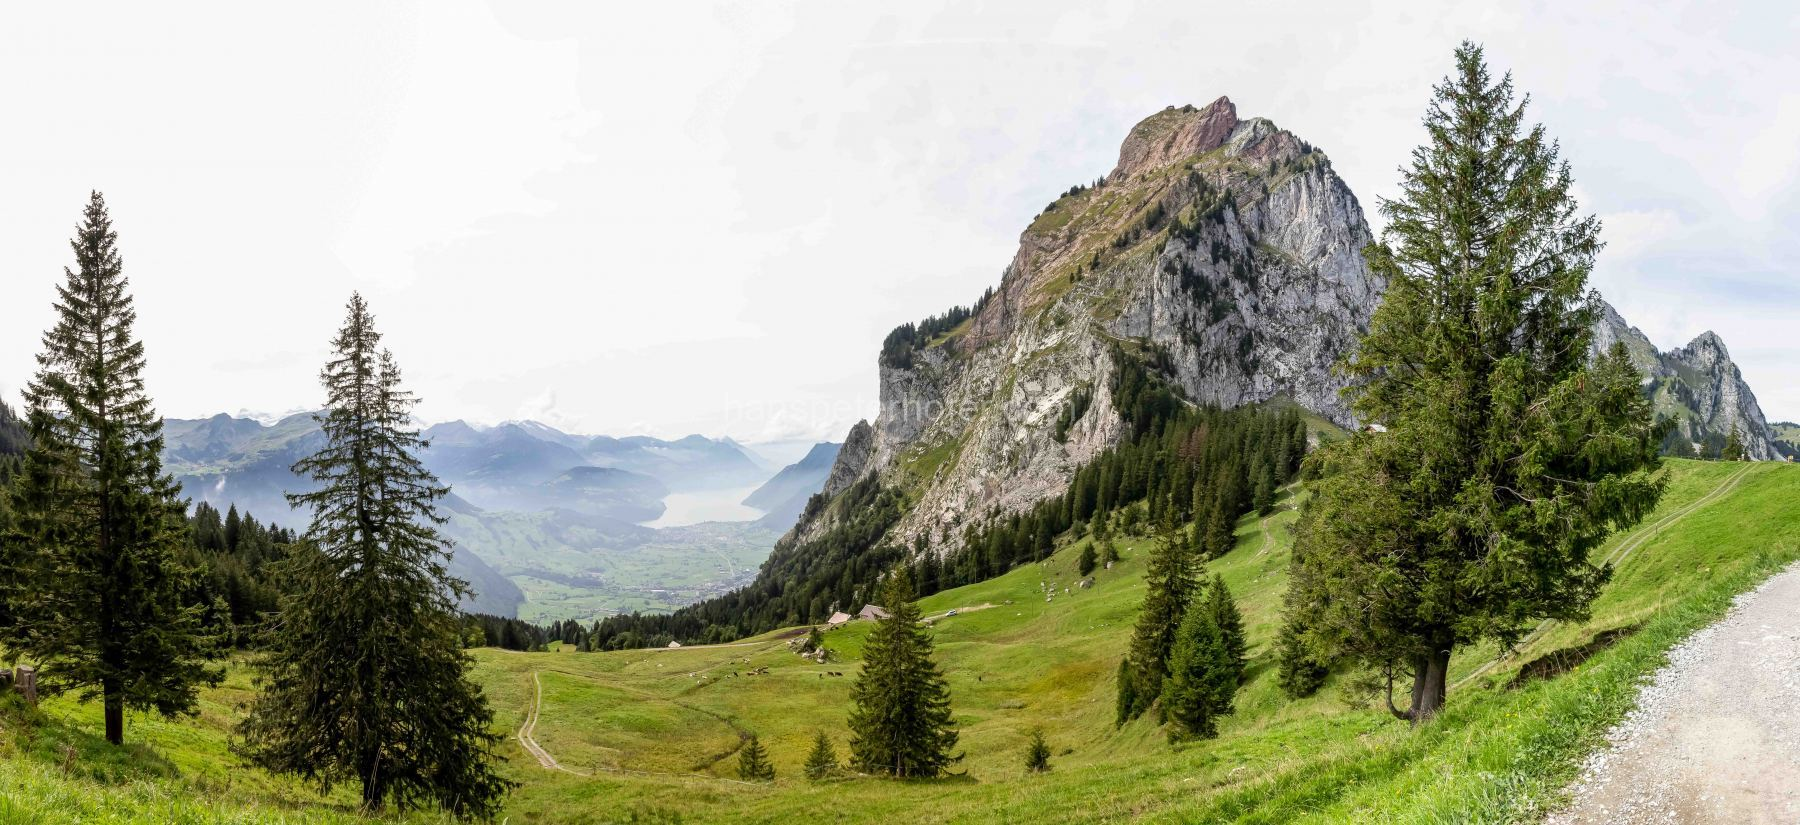 Pano_Rothenfluh-6